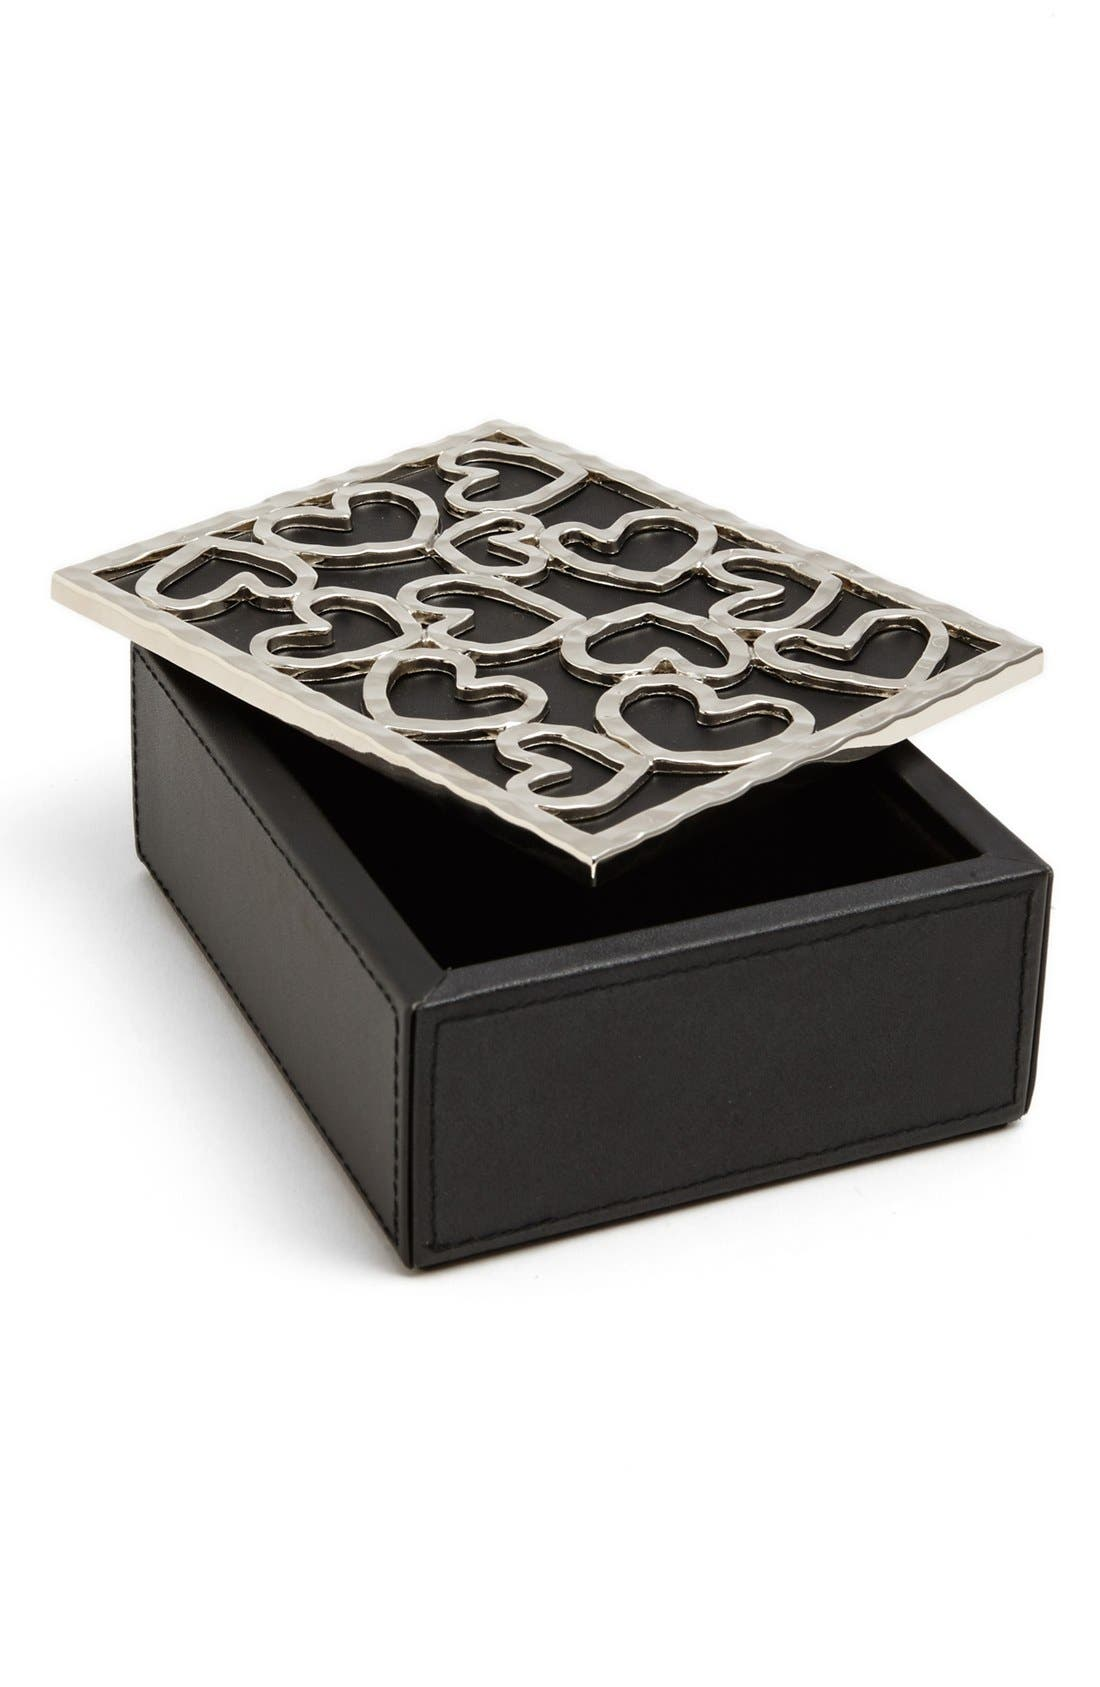 Alternate Image 1 Selected - Michael Aram 'Heart' Jewelry Box